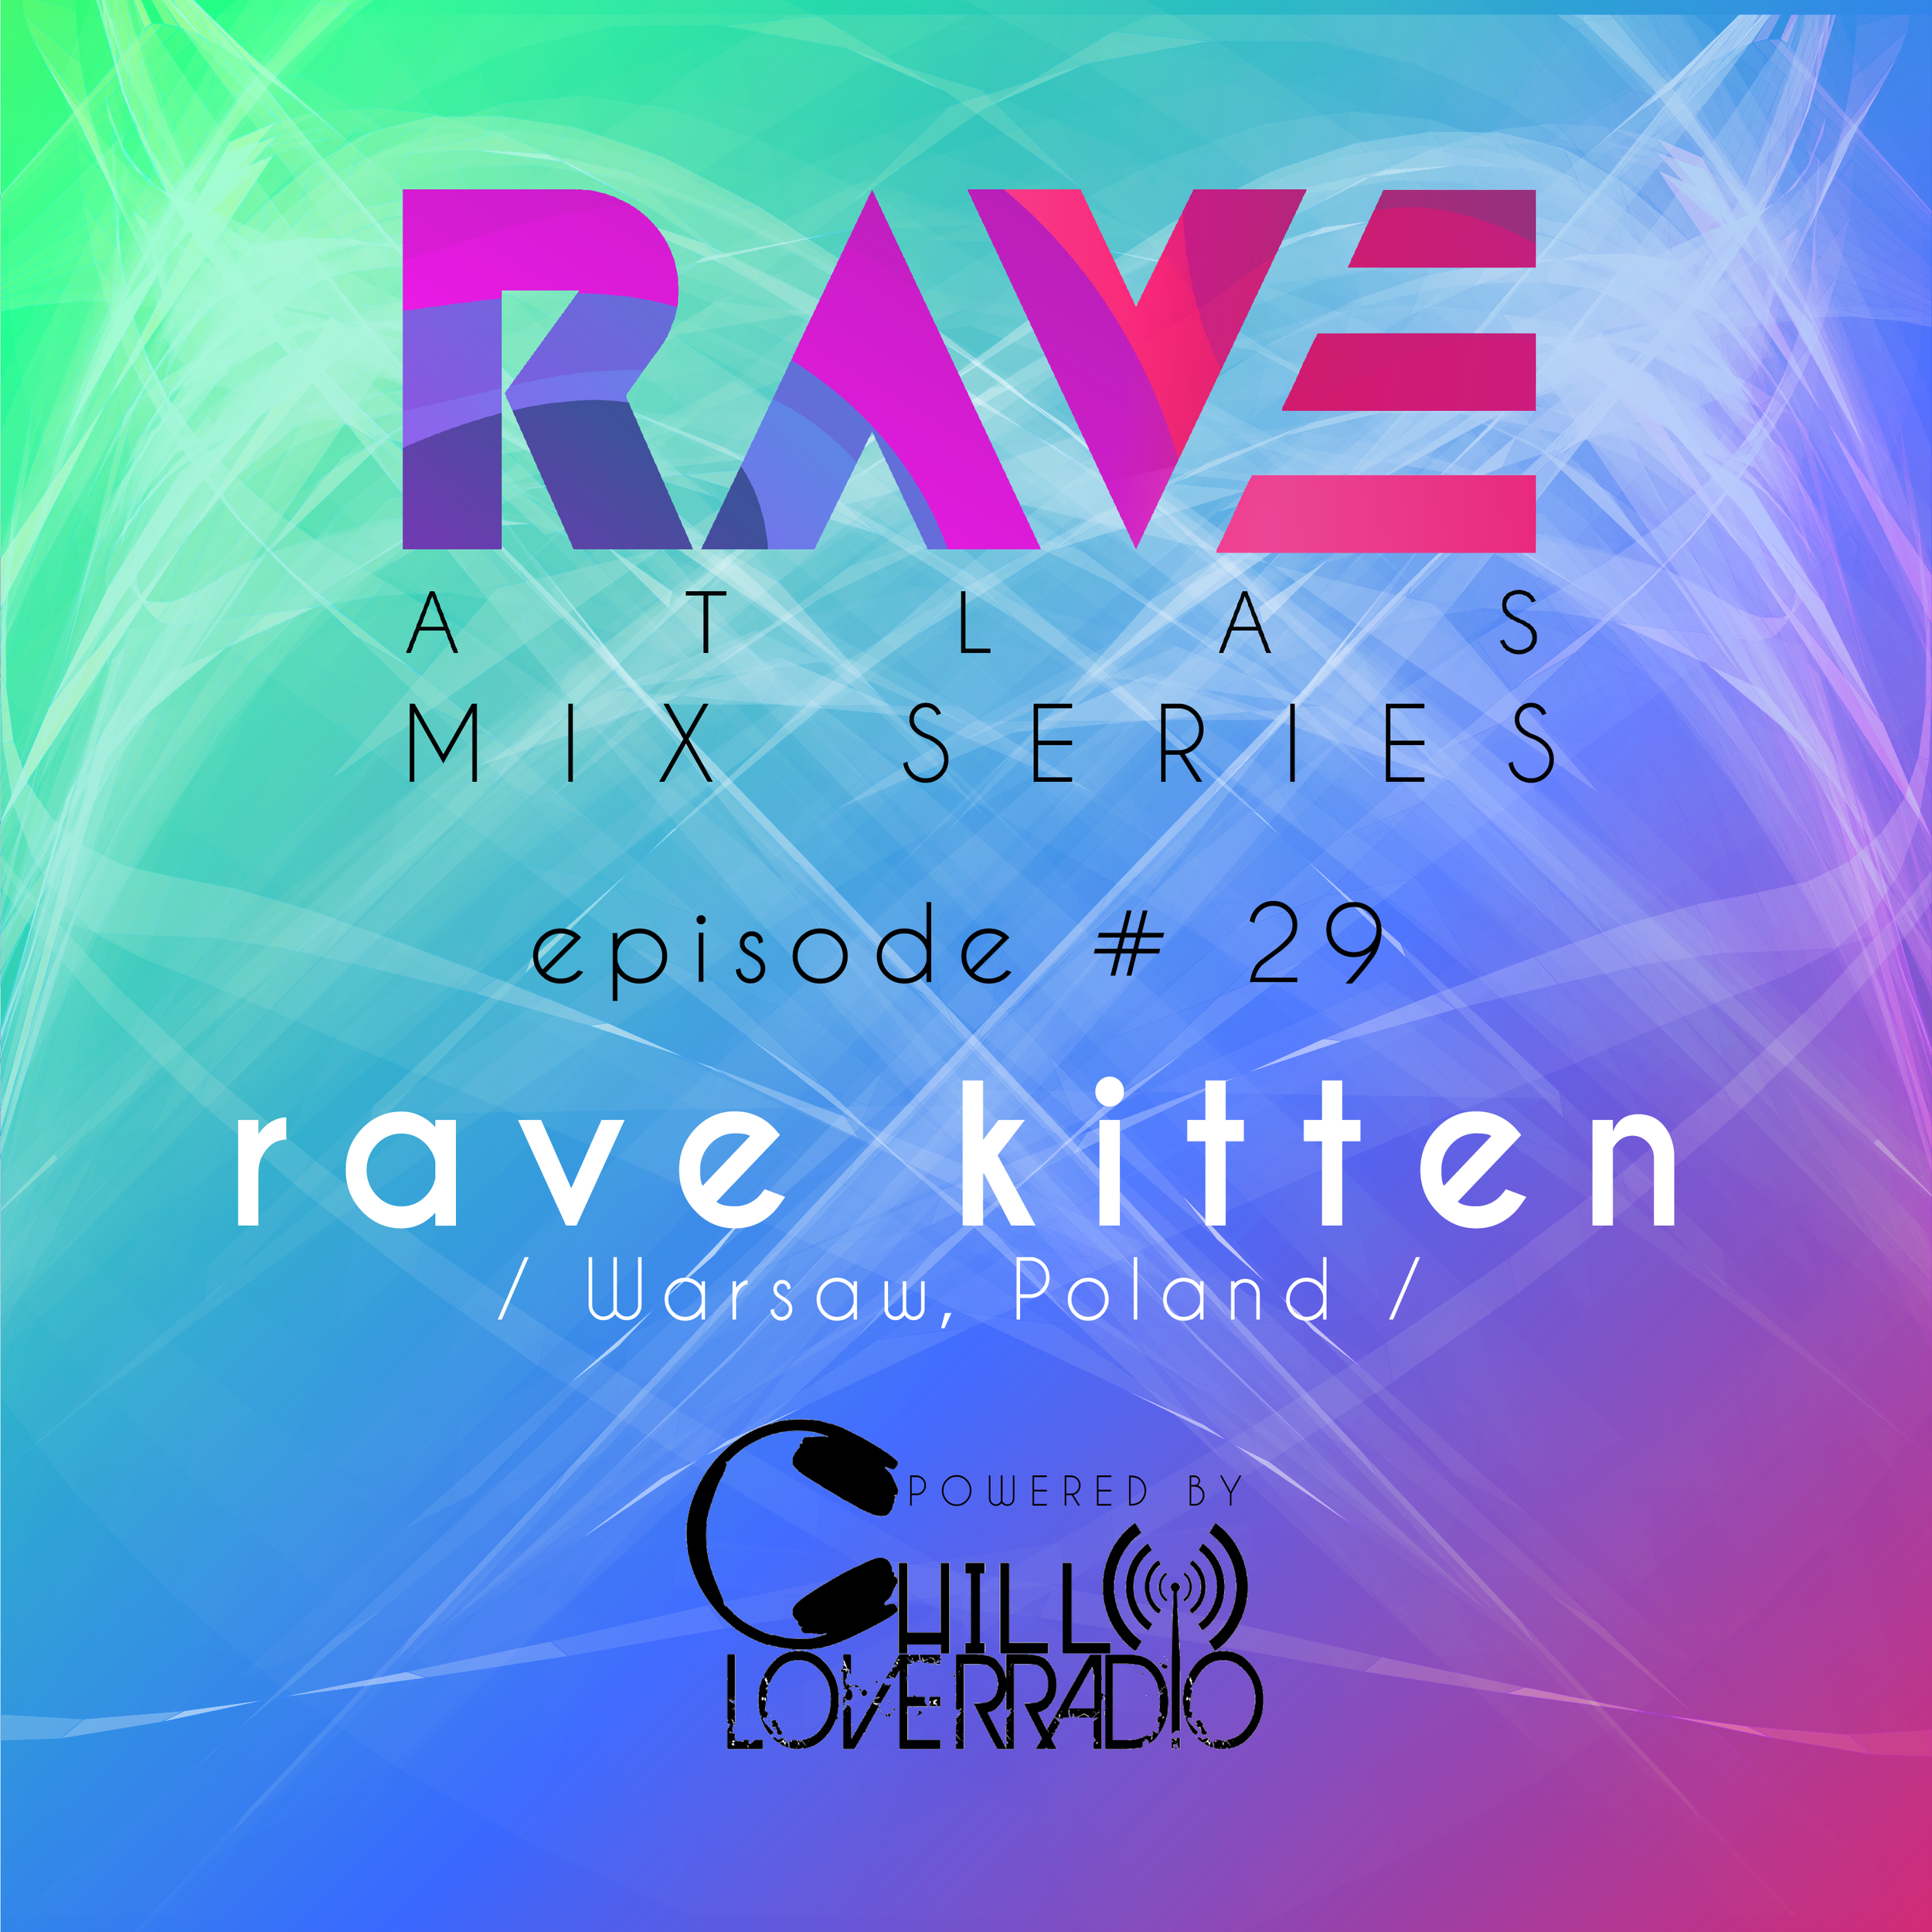 RAVE ATLAS MIX SERIES EP 029 - Warsaw, Poland